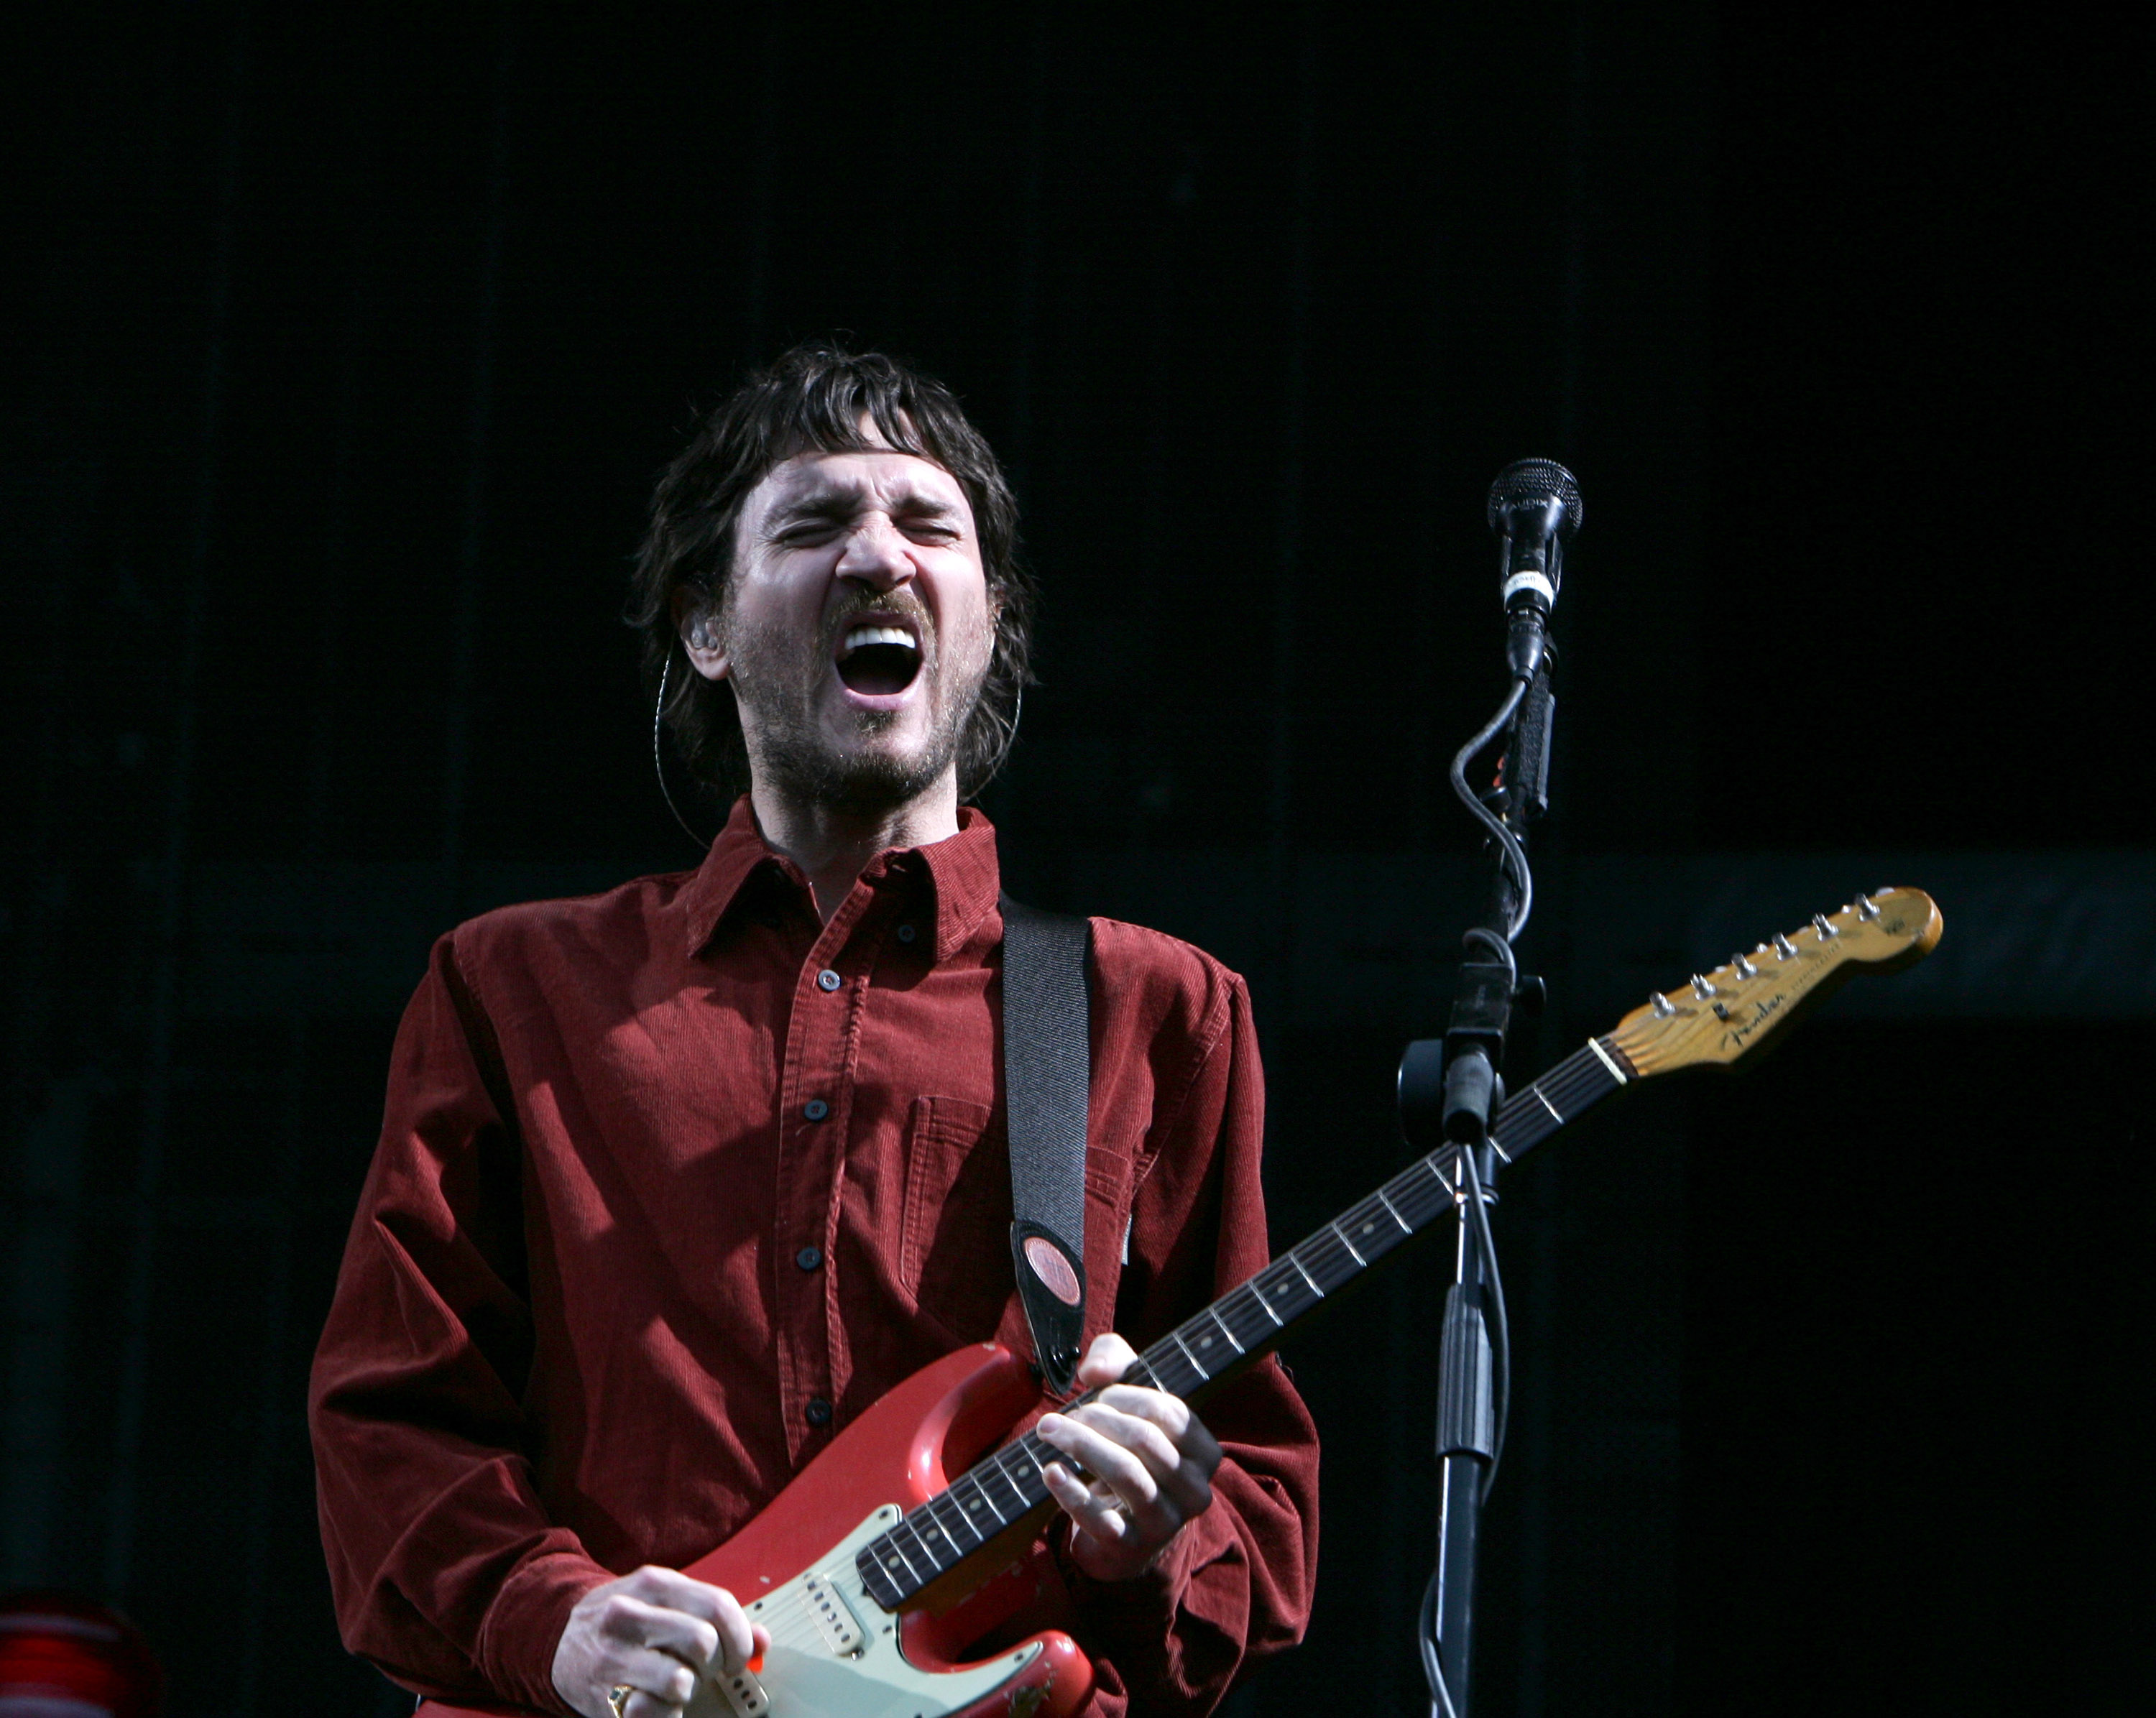 John Frusciante of Red Hot Chili Peppers performs live at Goffert Park on June 24, 2007 in Nijmegen, Netherlands.